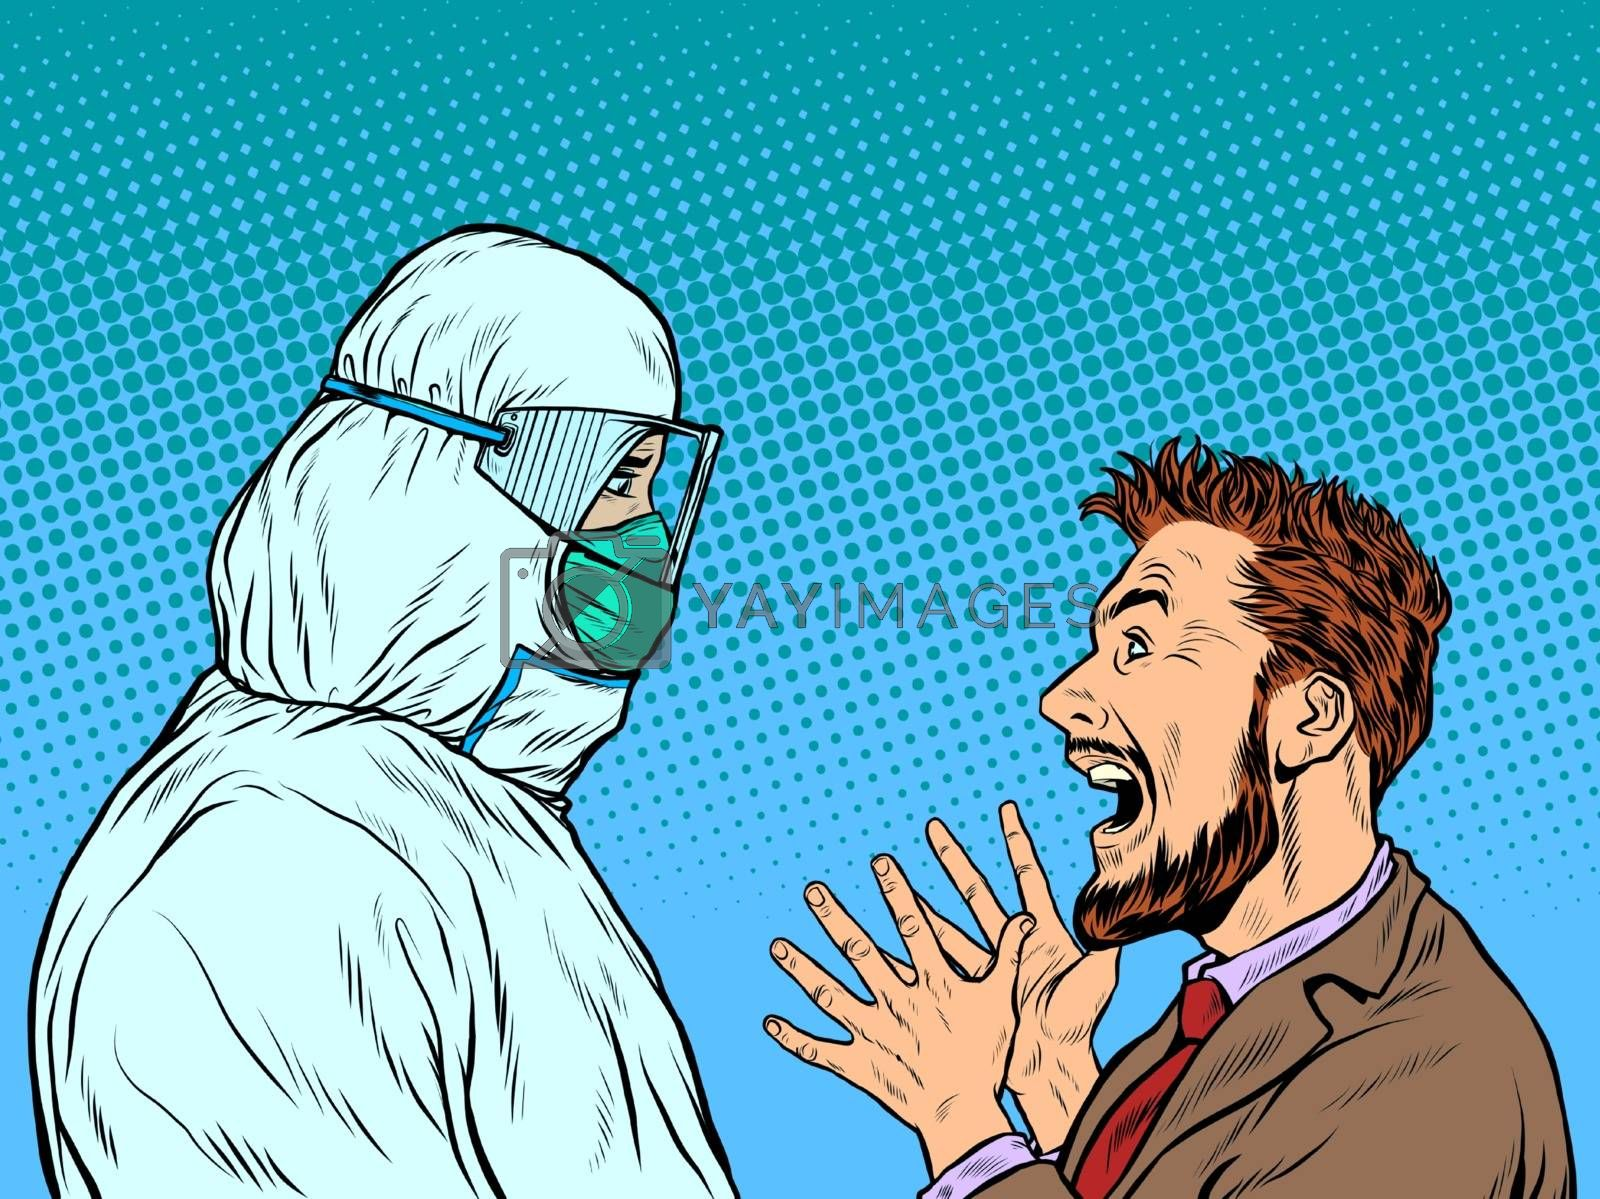 Doctor in protective suit and emotional patient man. Pop art retro vector illustration vintage kitsch 50s 60s style